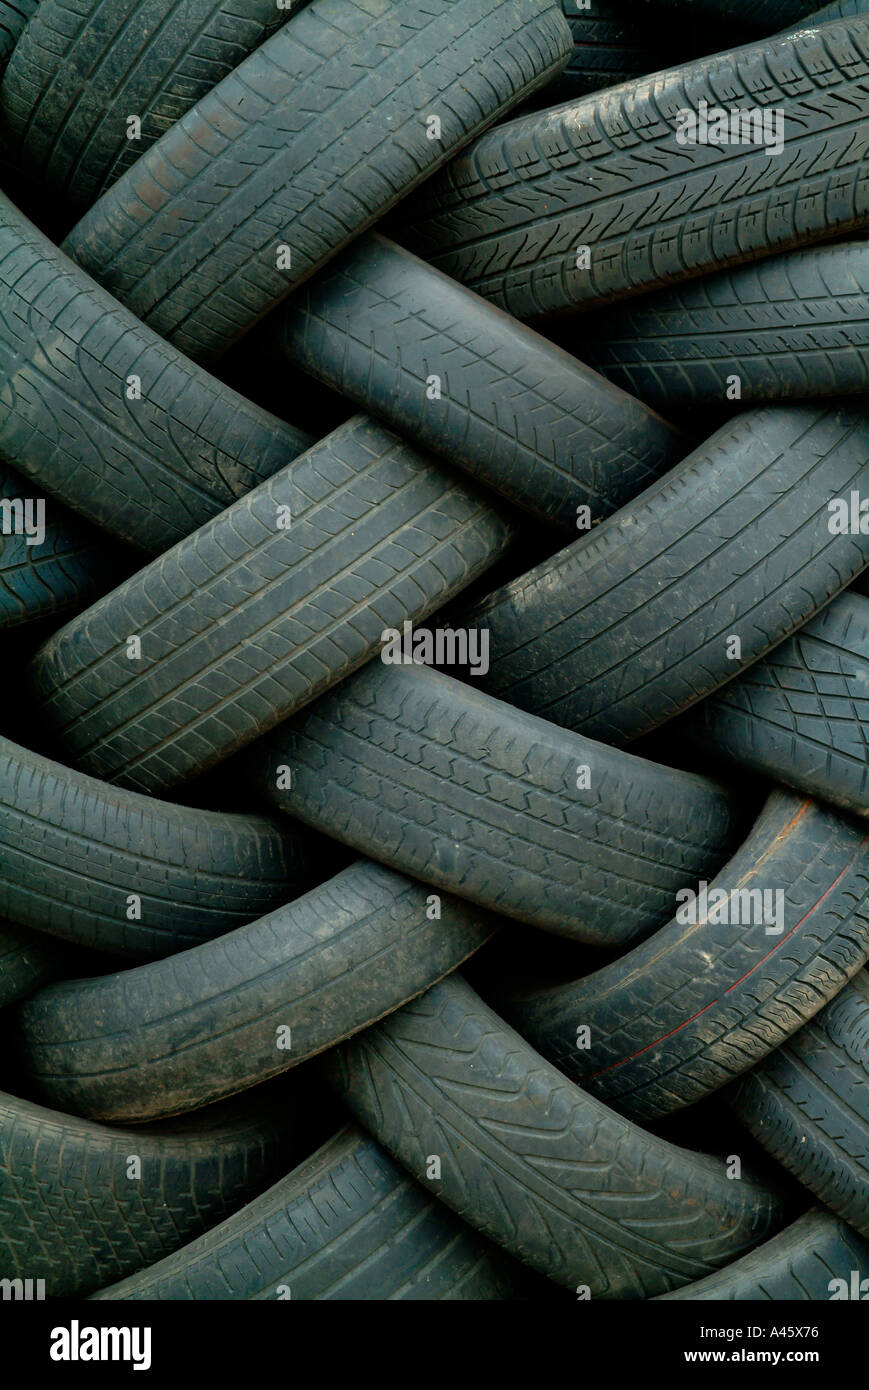 car tyres - Stock Image